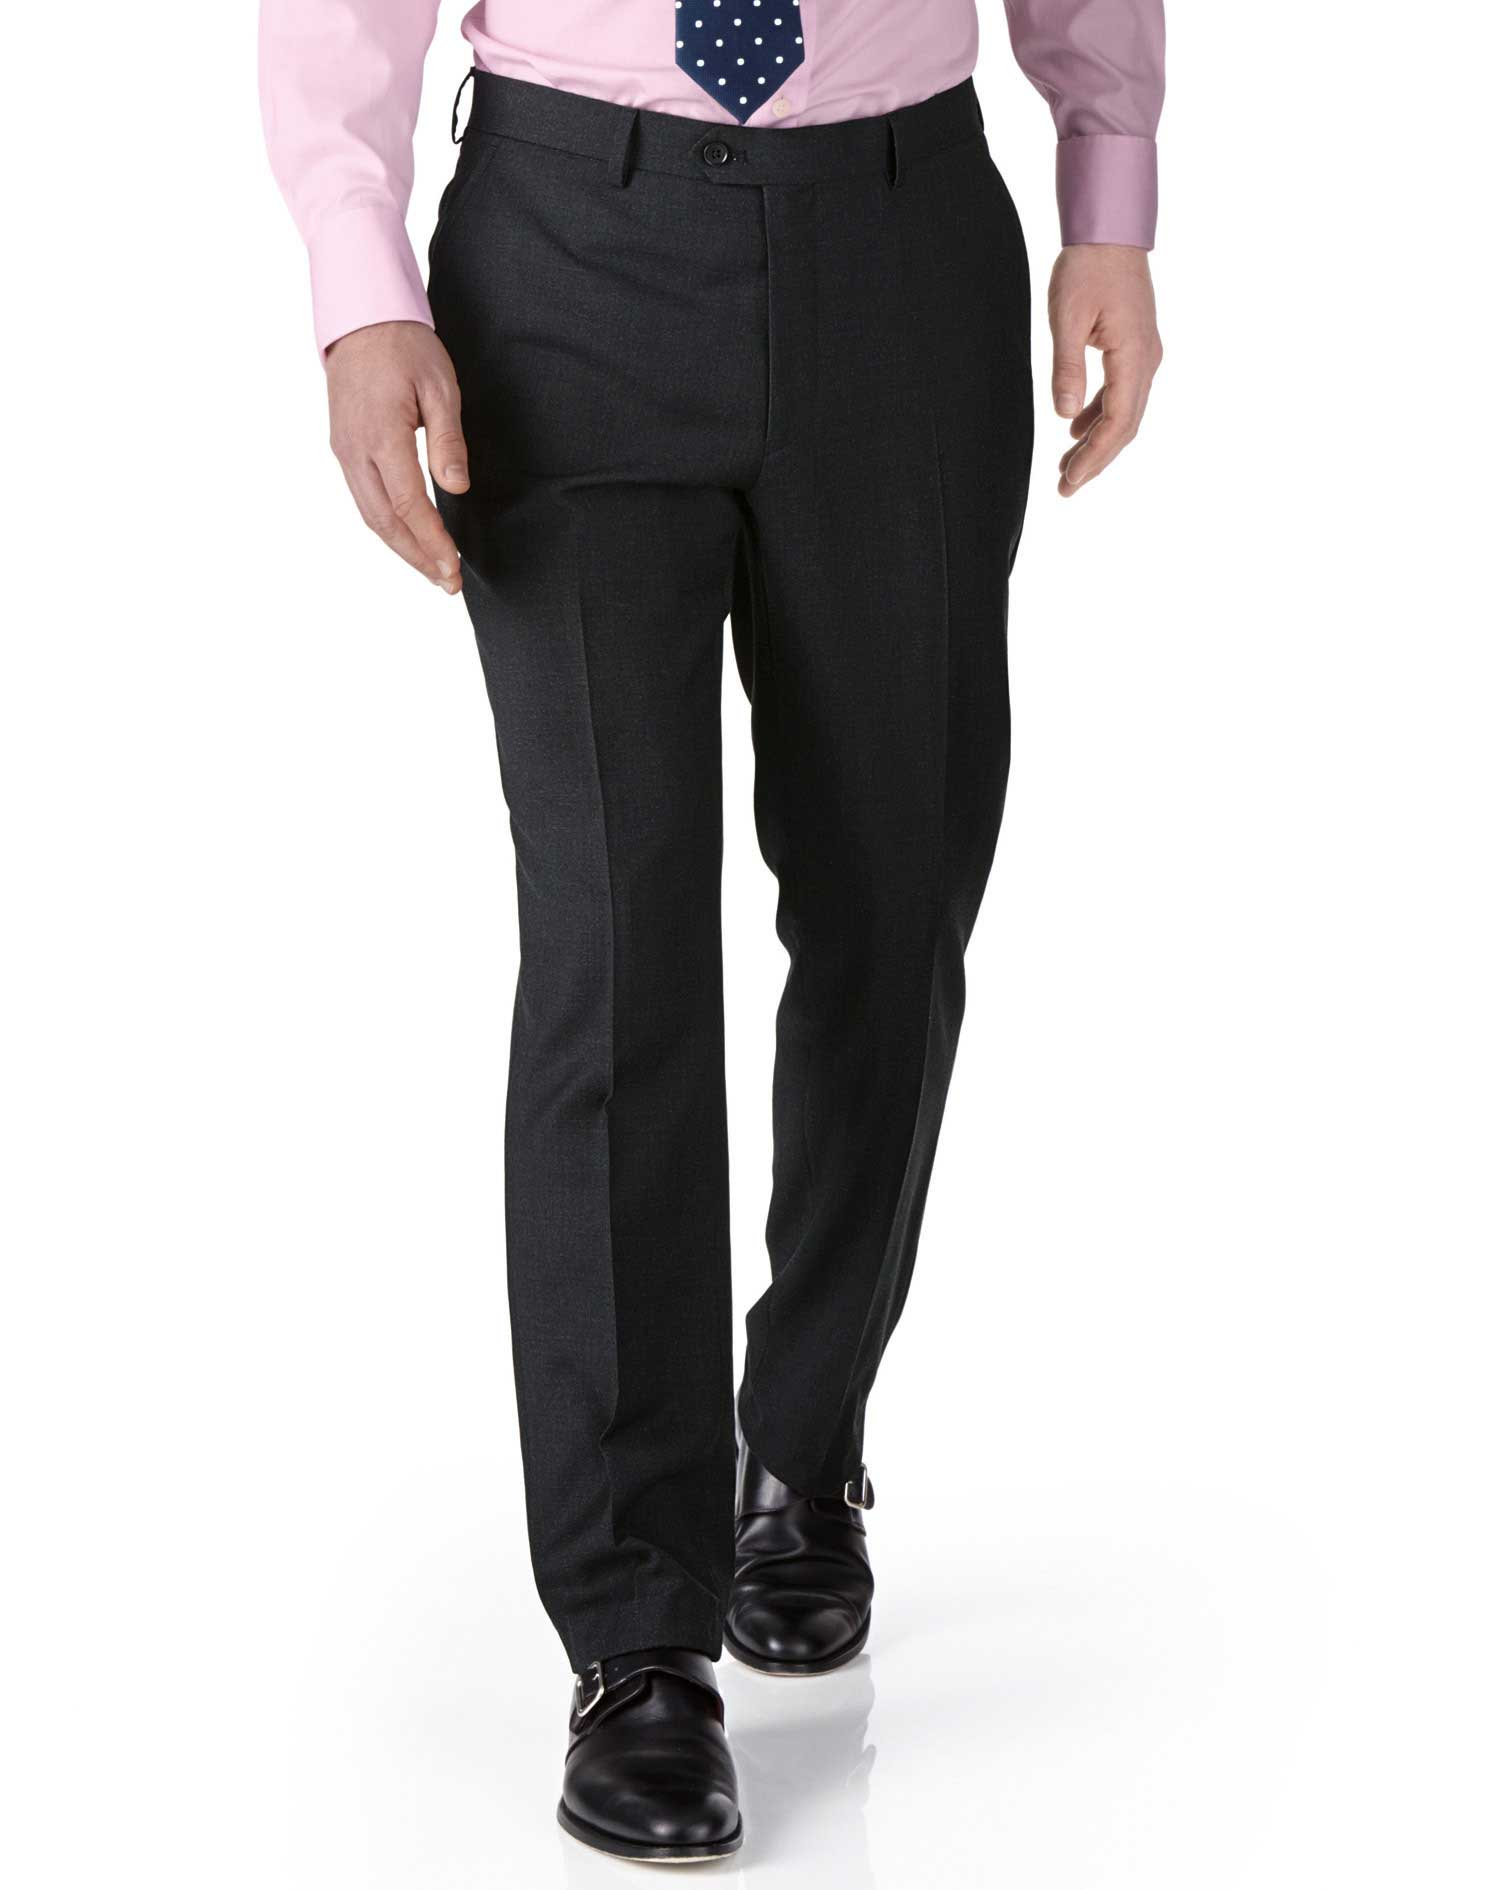 Charcoal Extra Slim Fit Twill Business Suit Trouser Size W36 L30 by Charles Tyrwhitt